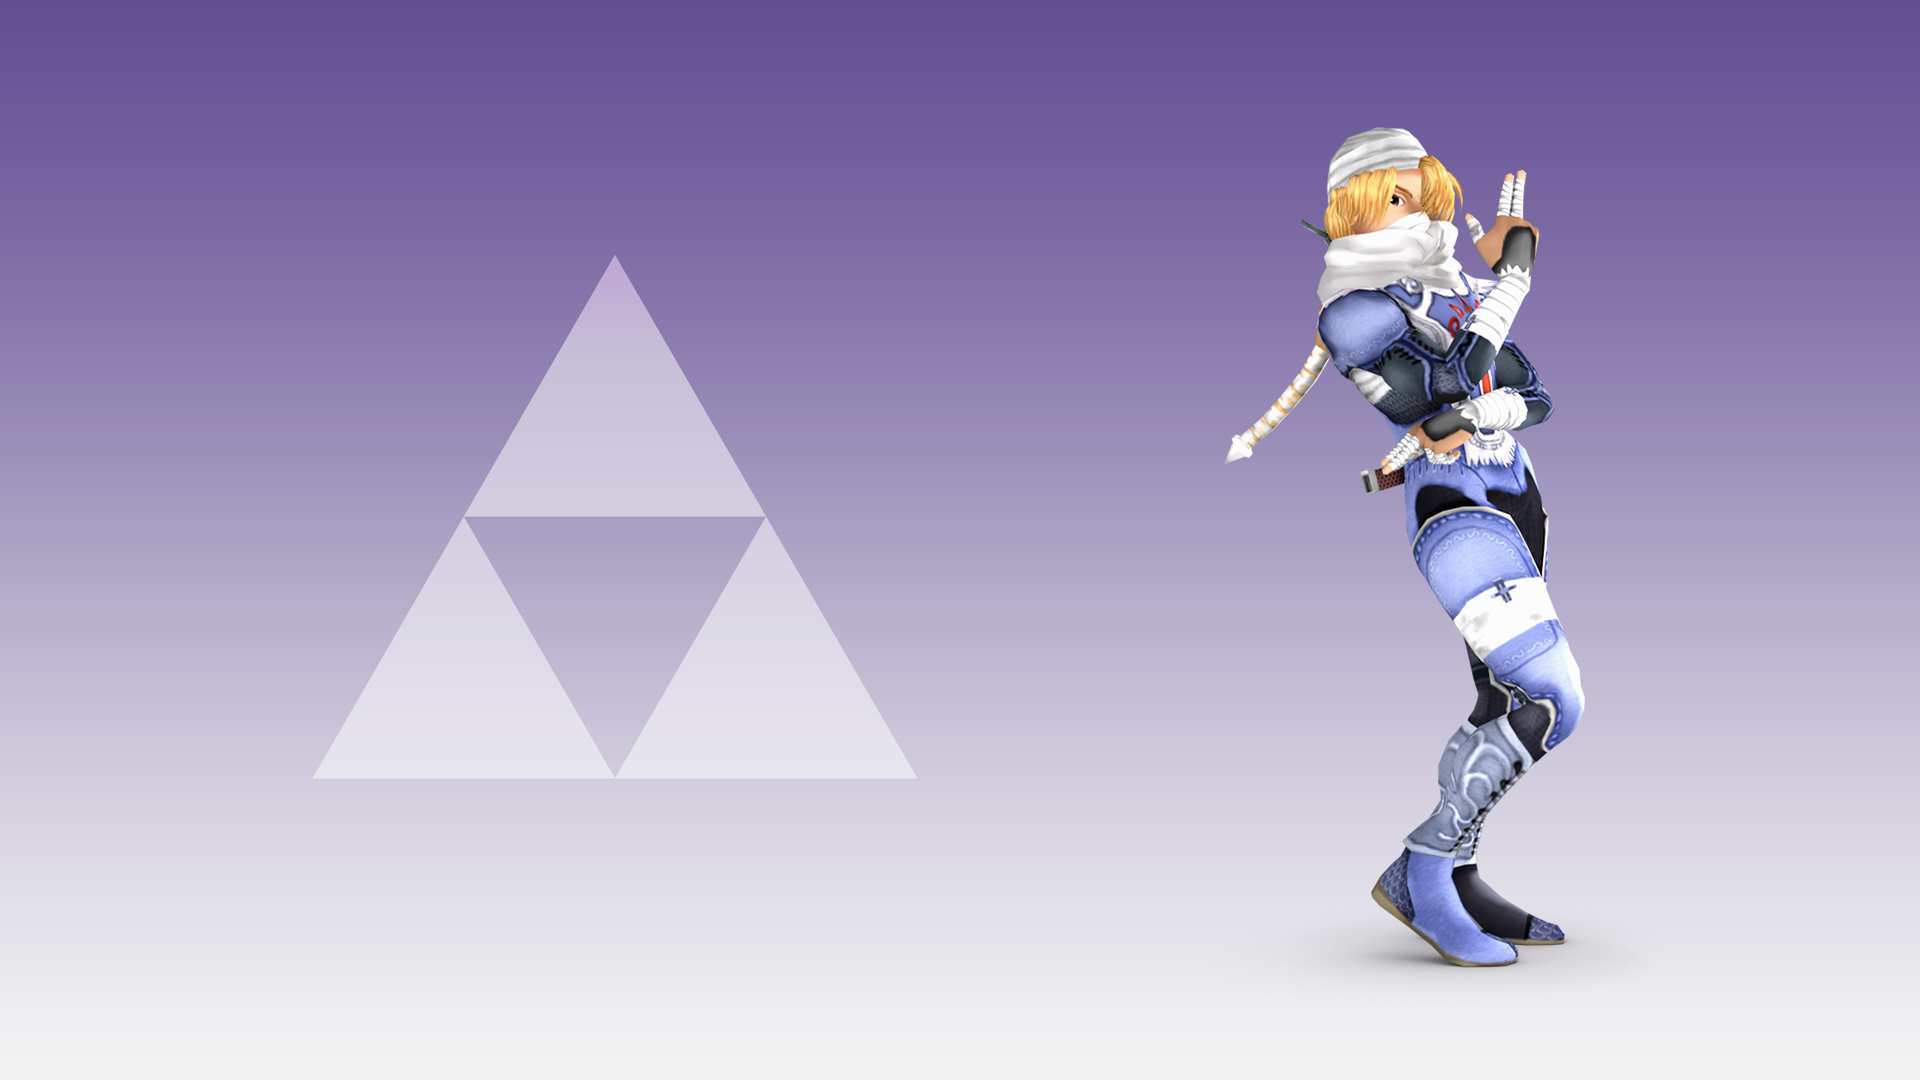 link and sheik wallpaper - photo #14